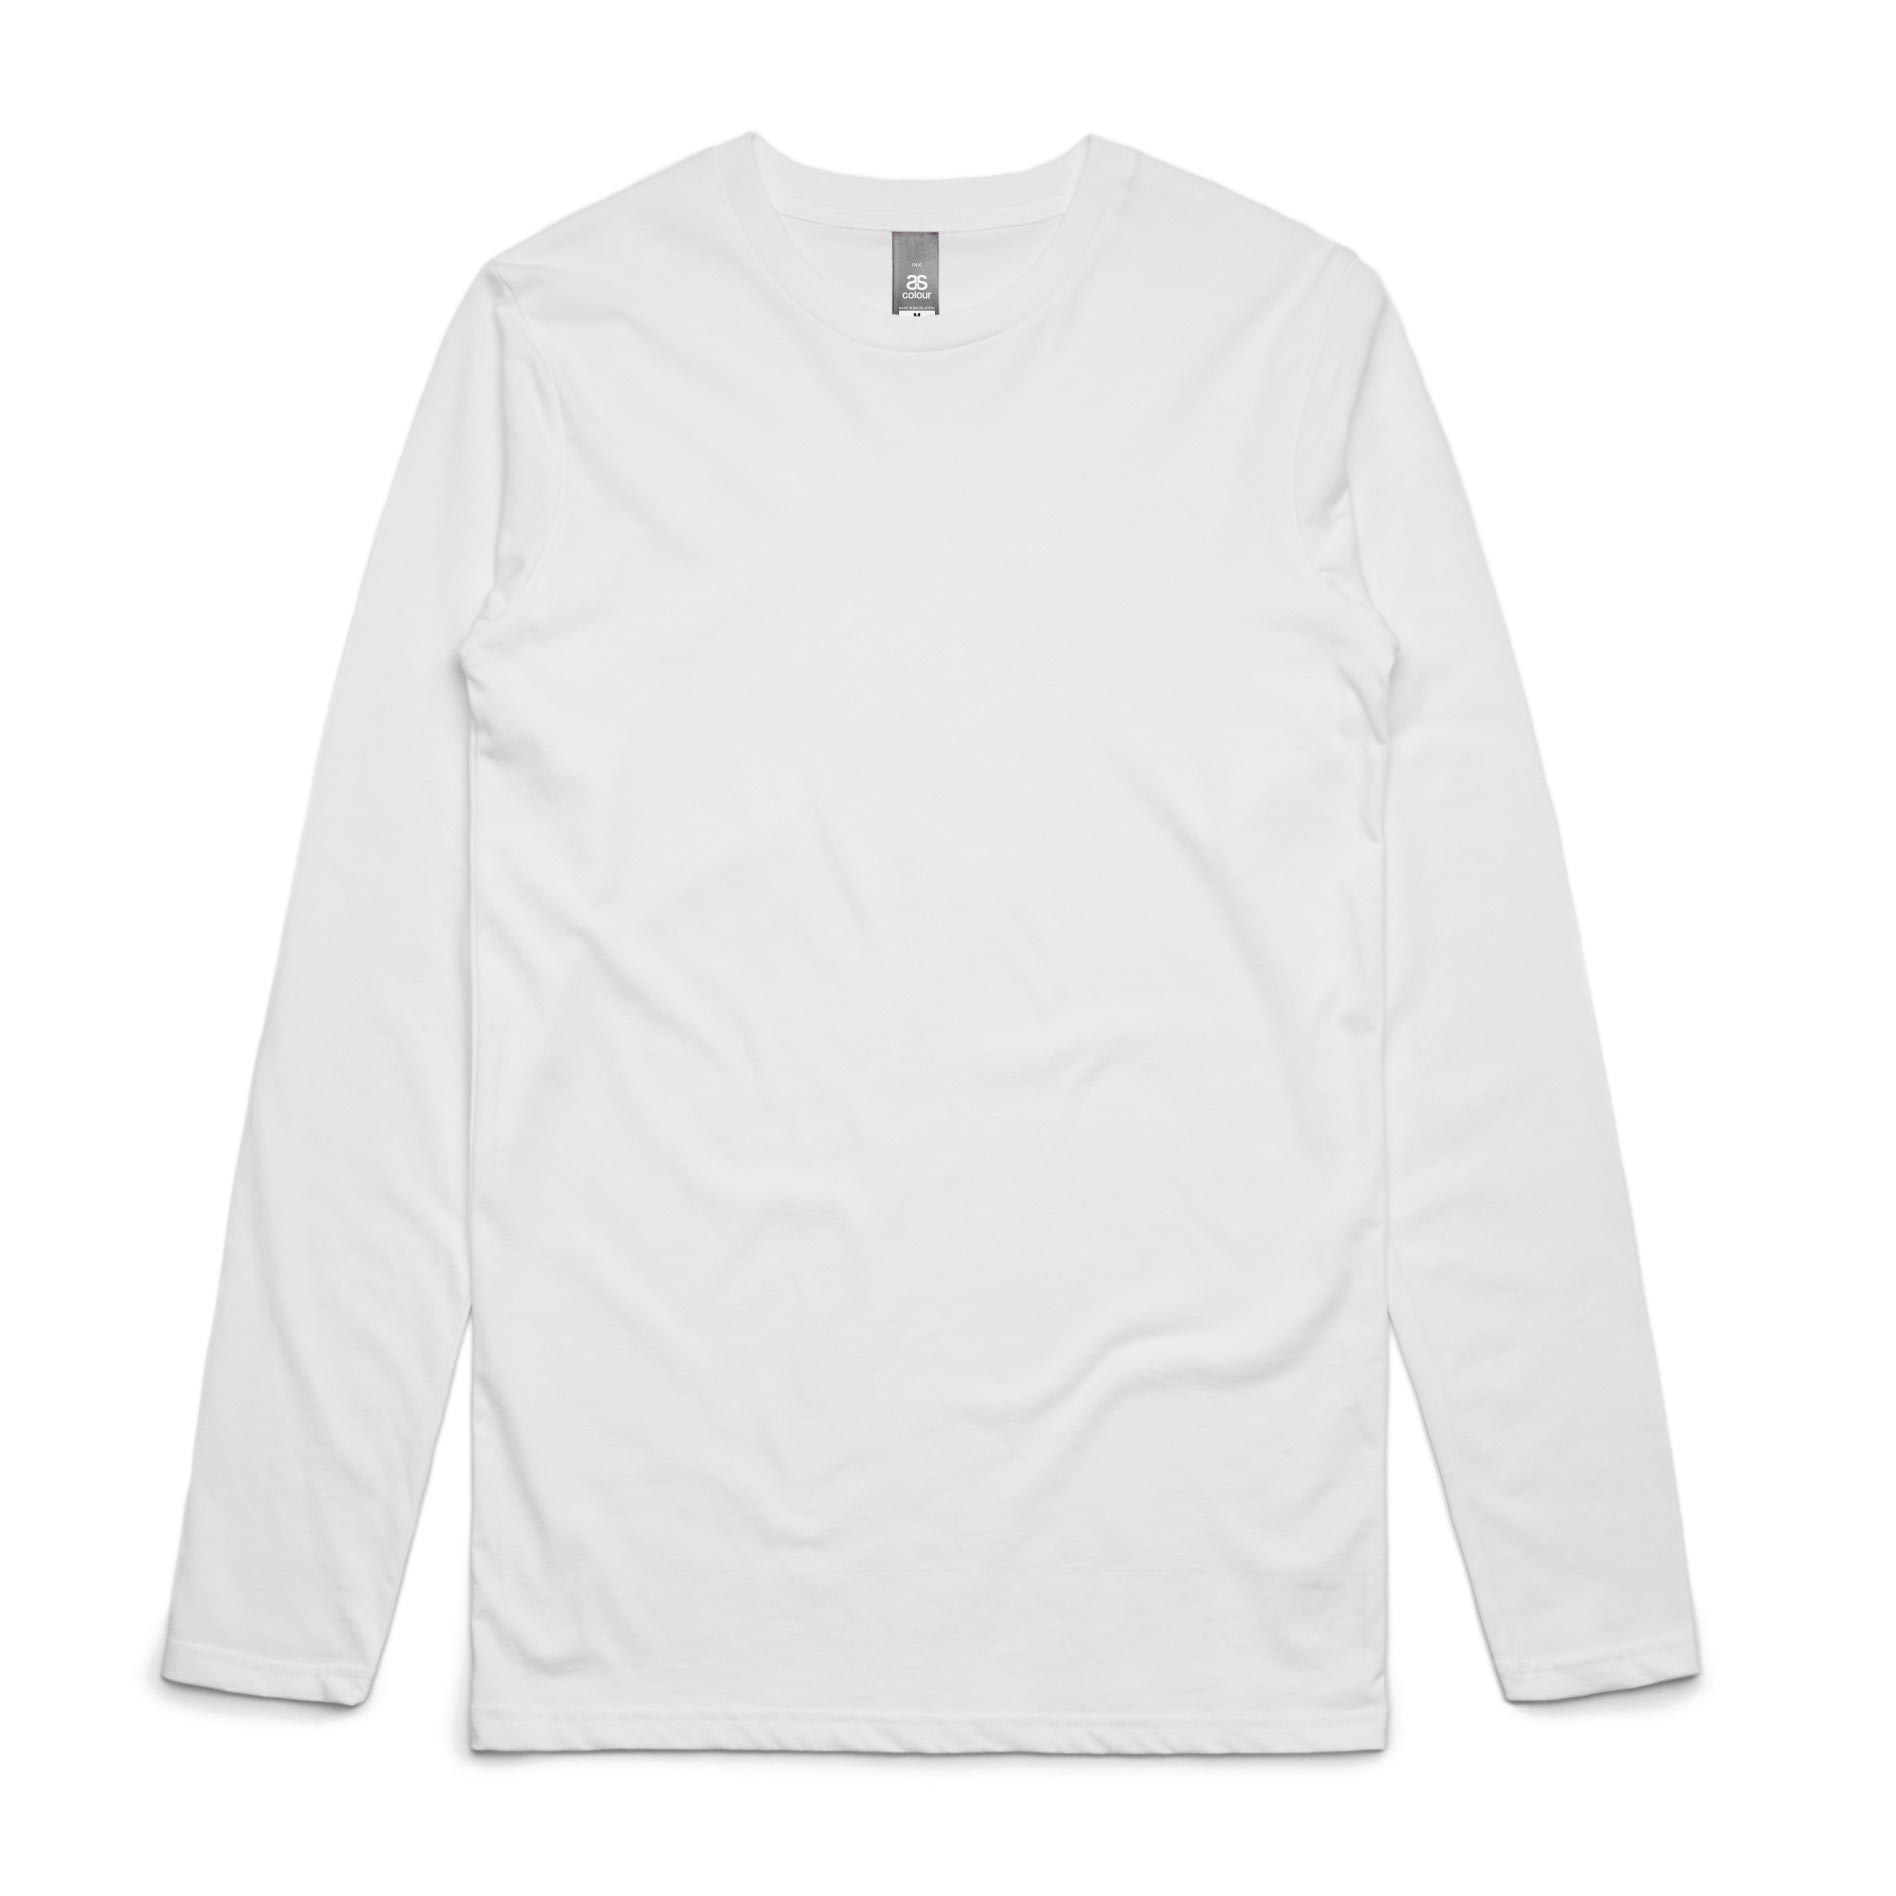 a0ce17c0f765 Custom Printed AS Colour Ink Longsleeve T-Shirts - Awesome Merchandise